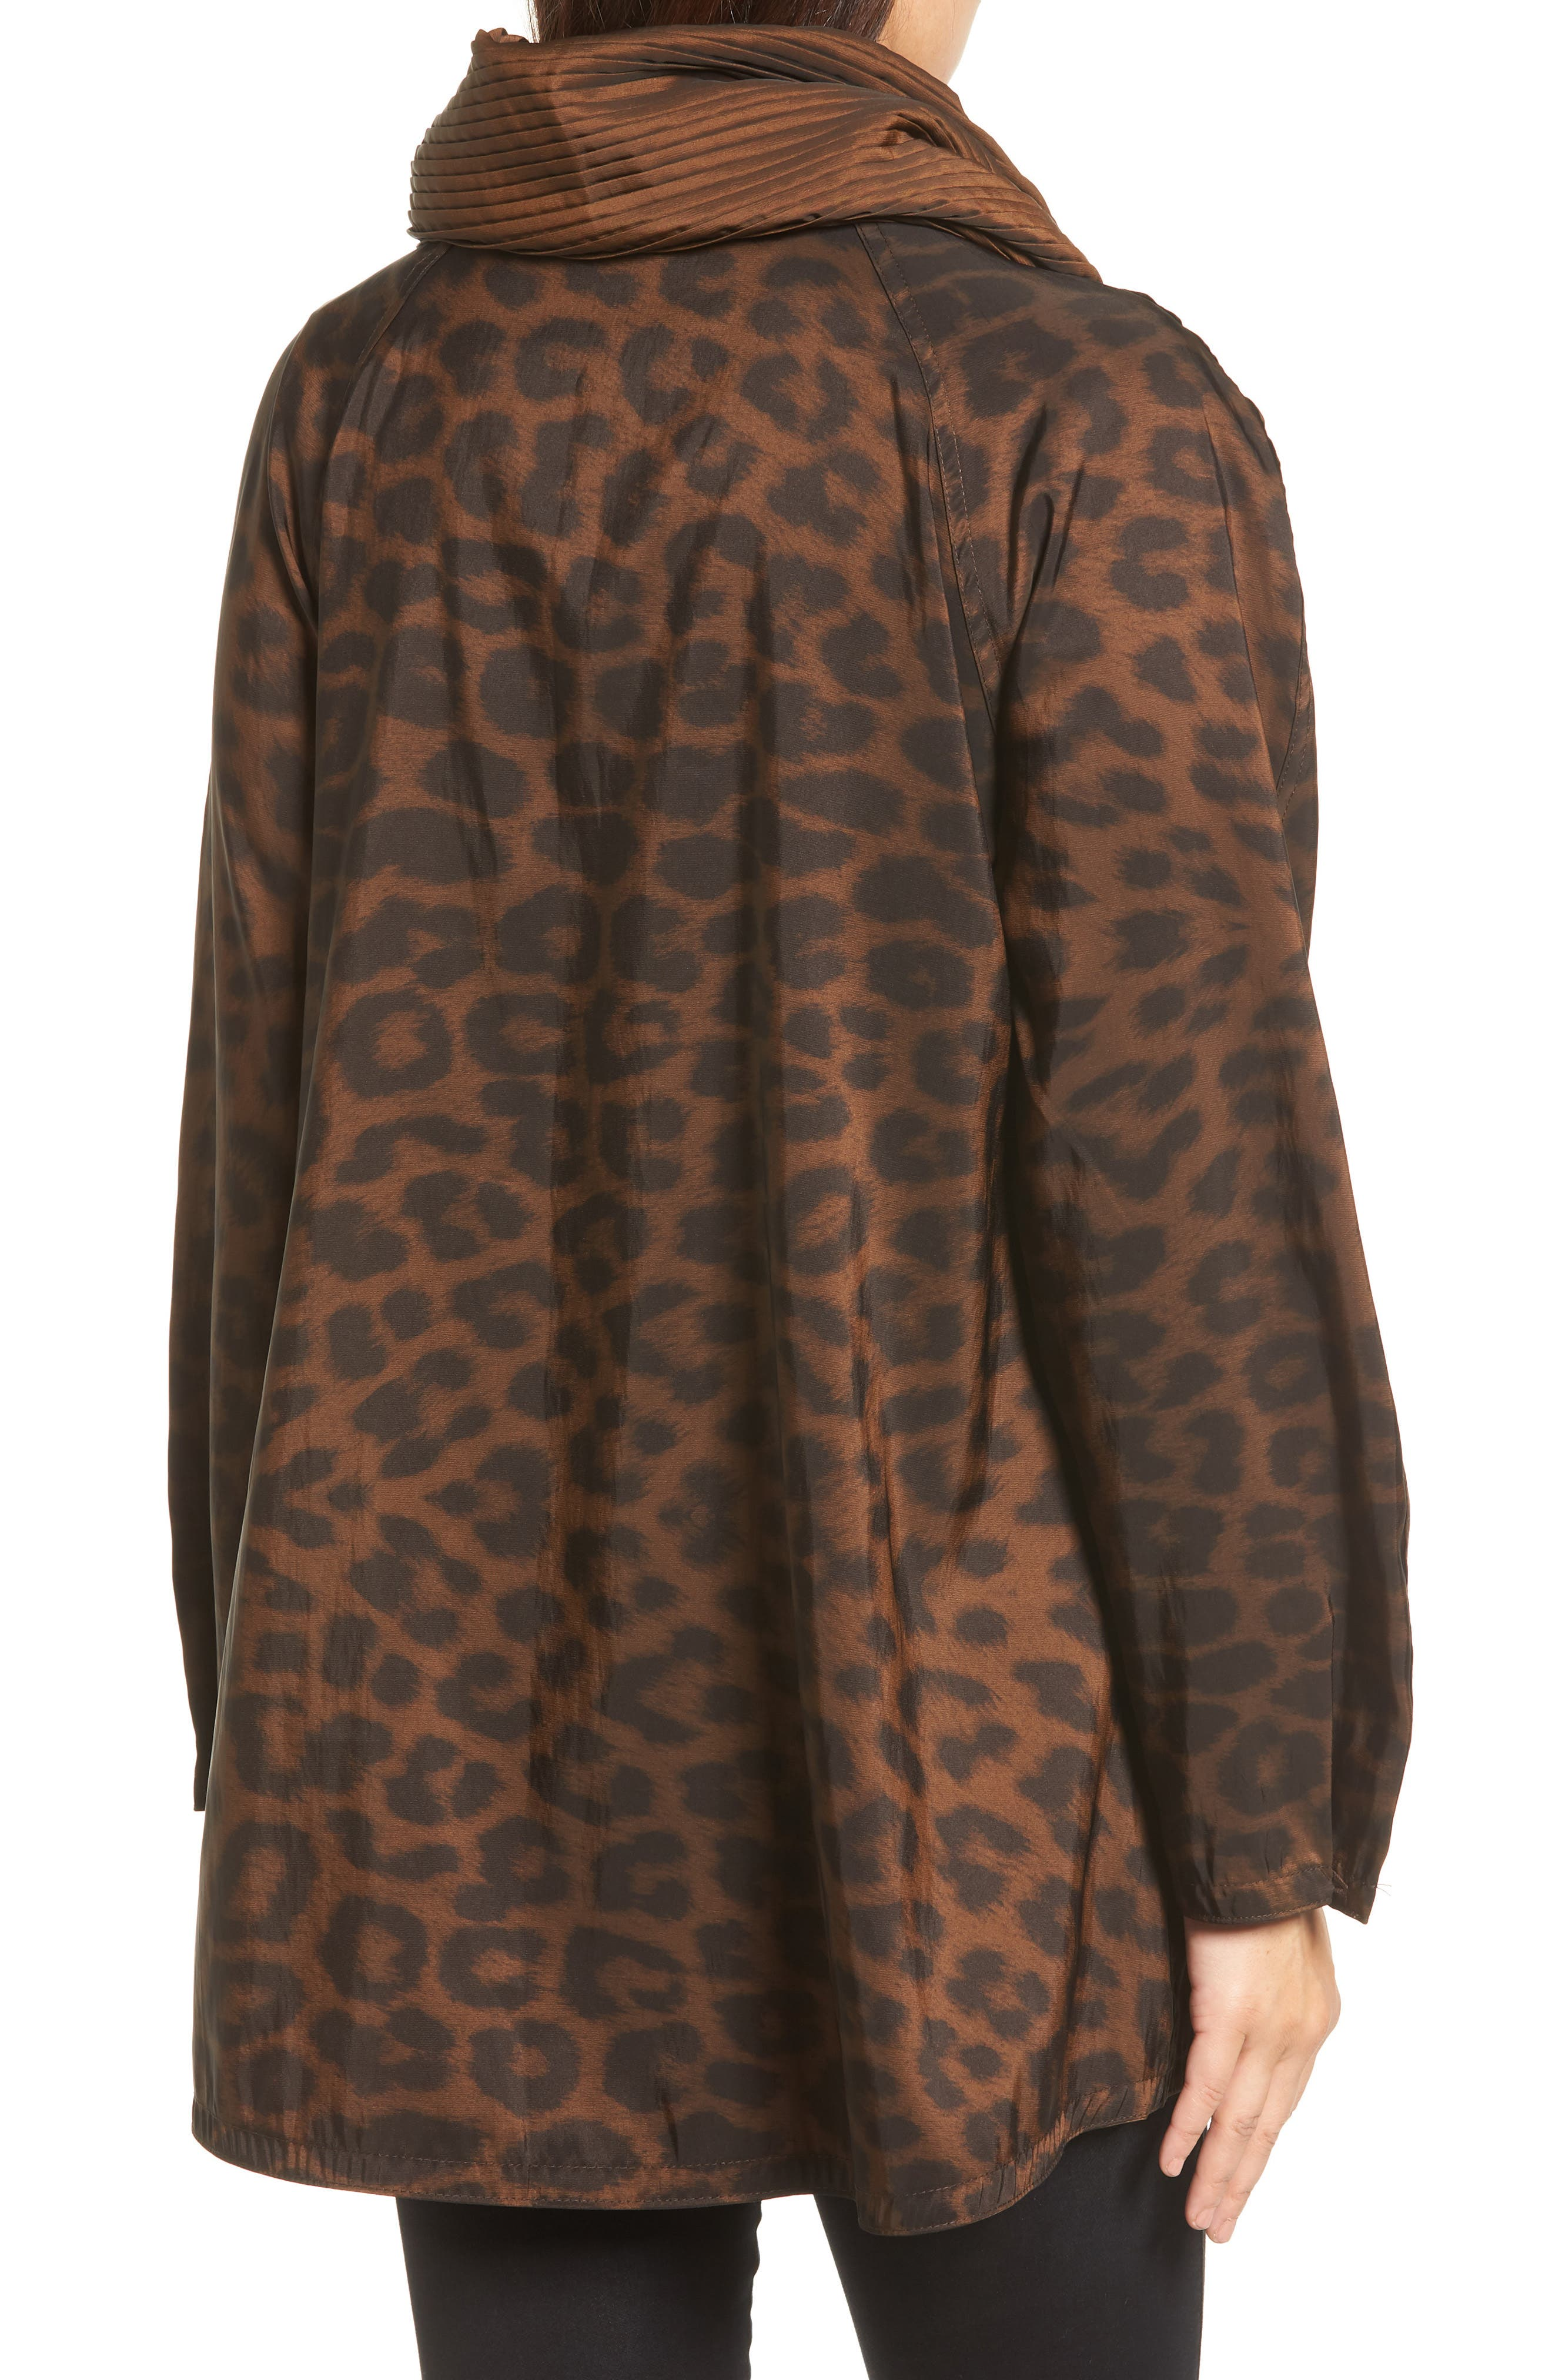 'Mini Donatella Leopard' Reversible Pleat Hood Packable Travel Coat,                             Alternate thumbnail 3, color,                             New Leopard